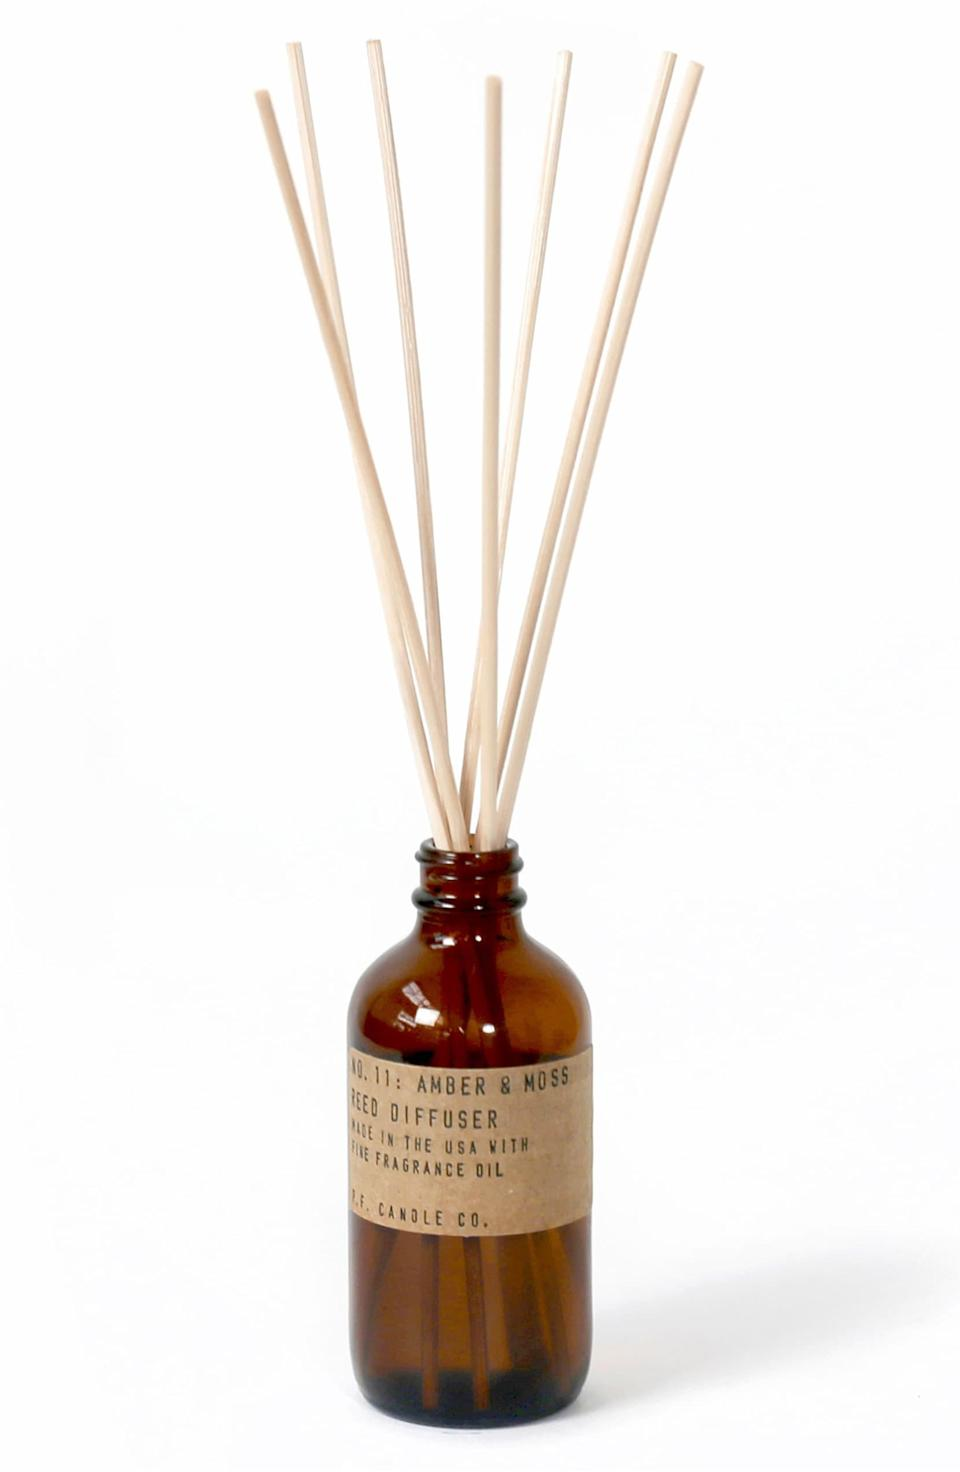 """This amber medicine bottle has an old-school charm, and it comes in a bunch of differently scented reeds (pion, sandalwood rose, or teakwood and tobacco) to suit each of your rooms or moods. $24, Nordstrom. <a href=""""https://shop.nordstrom.com/s/p-f-candle-co-reed-diffuser/5400806?"""" rel=""""nofollow noopener"""" target=""""_blank"""" data-ylk=""""slk:Get it now!"""" class=""""link rapid-noclick-resp"""">Get it now!</a>"""